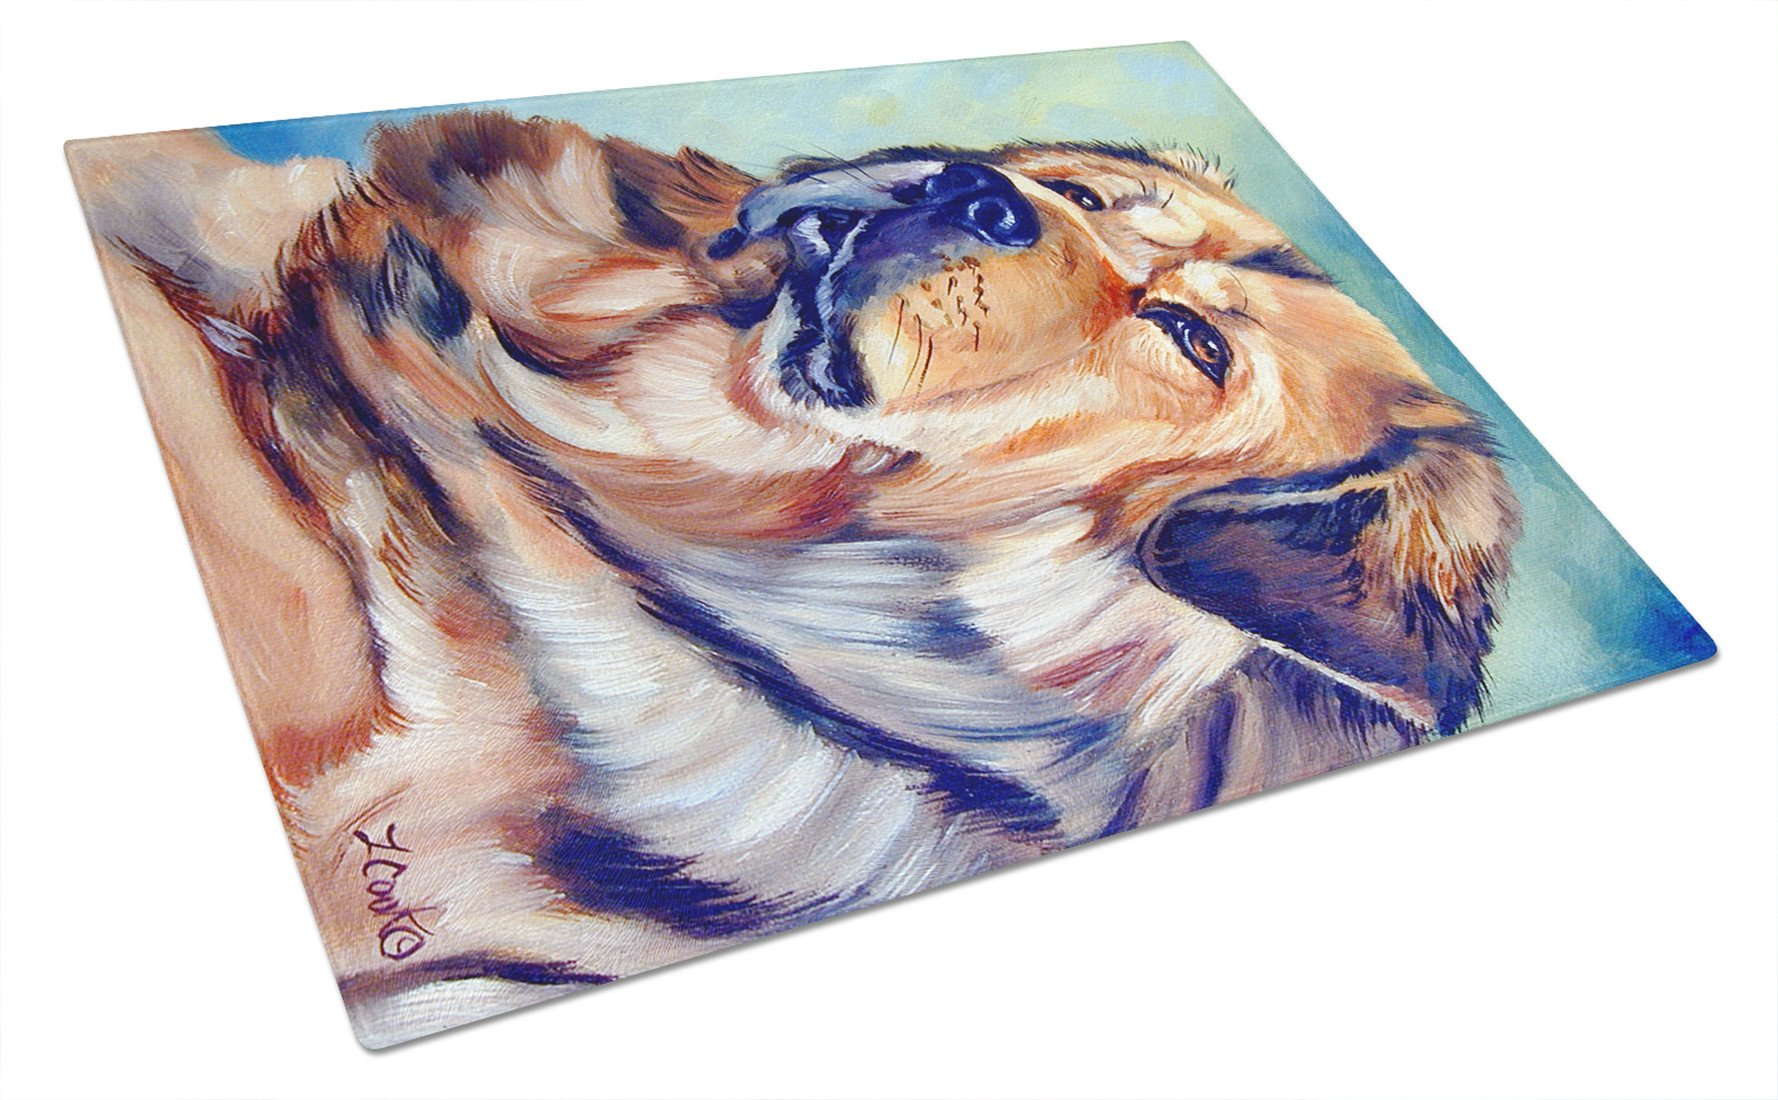 Tibetan Mastiff Glass Cutting Board Large 7399LCB by Caroline's Treasures